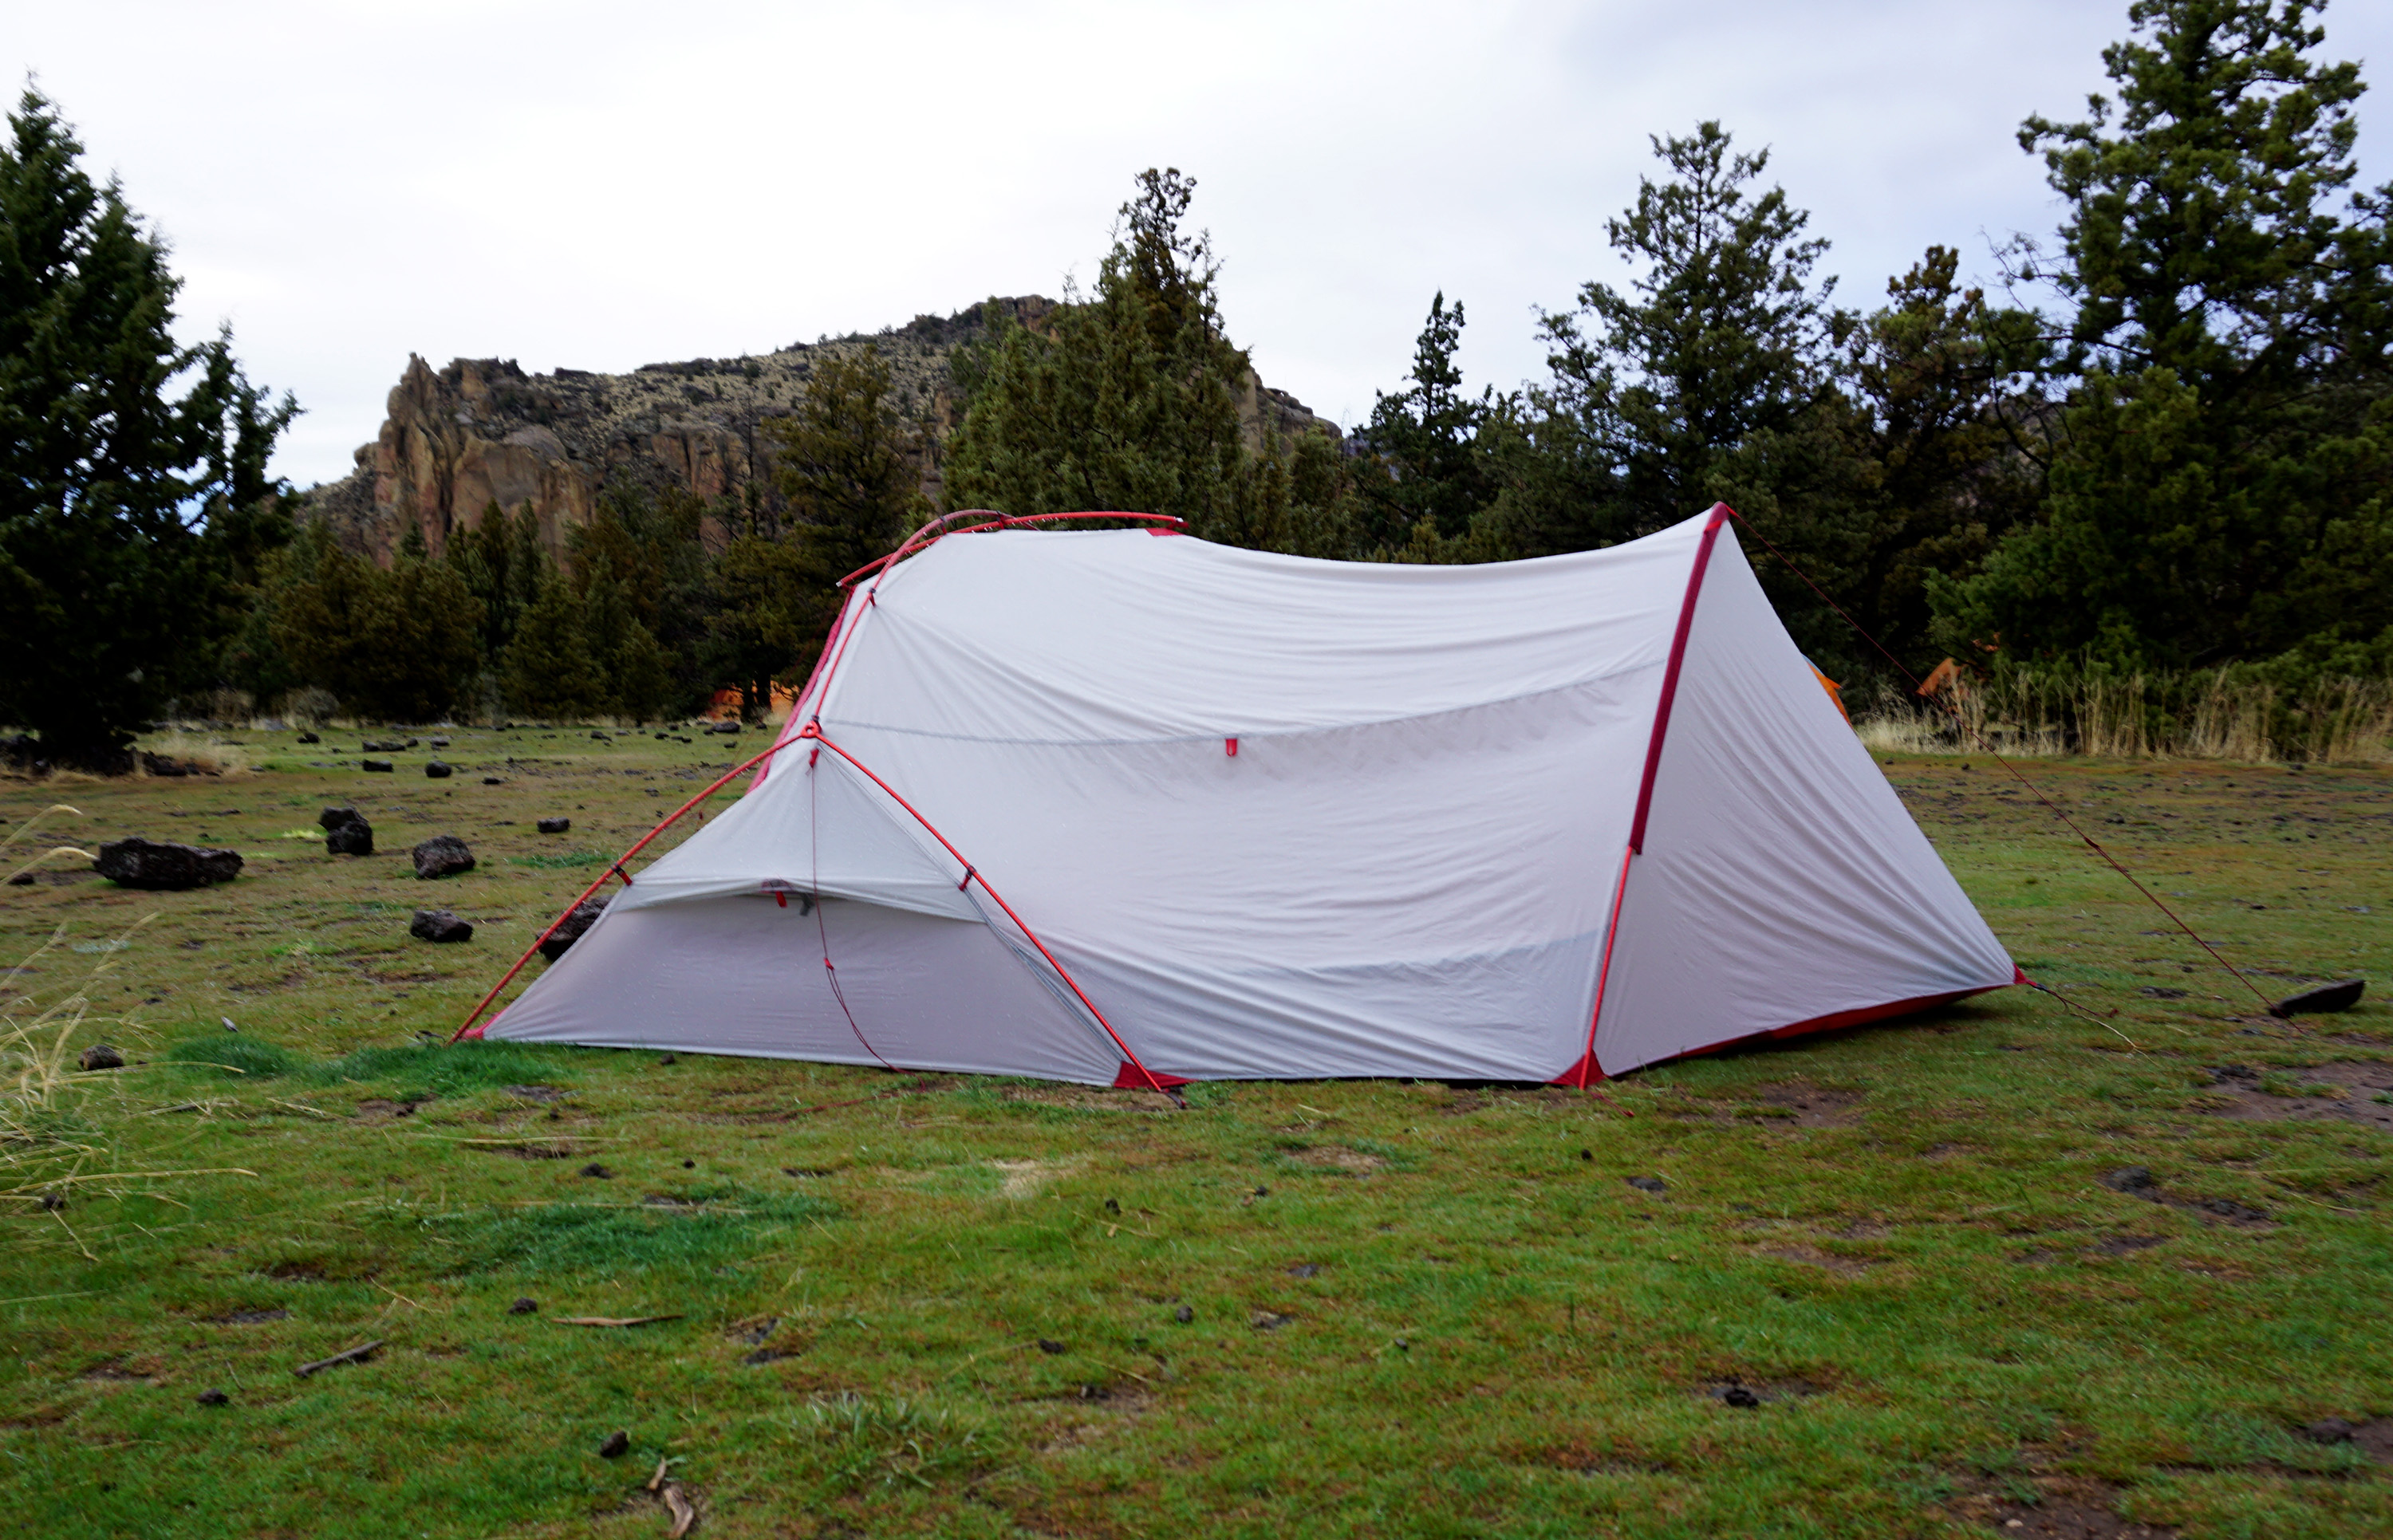 MSR Hubba Tour 2 Tent Review Weather Storms in Style & MSR Hubba Tour 2 Tent Review: Weather Storms in Style | GearJunkie